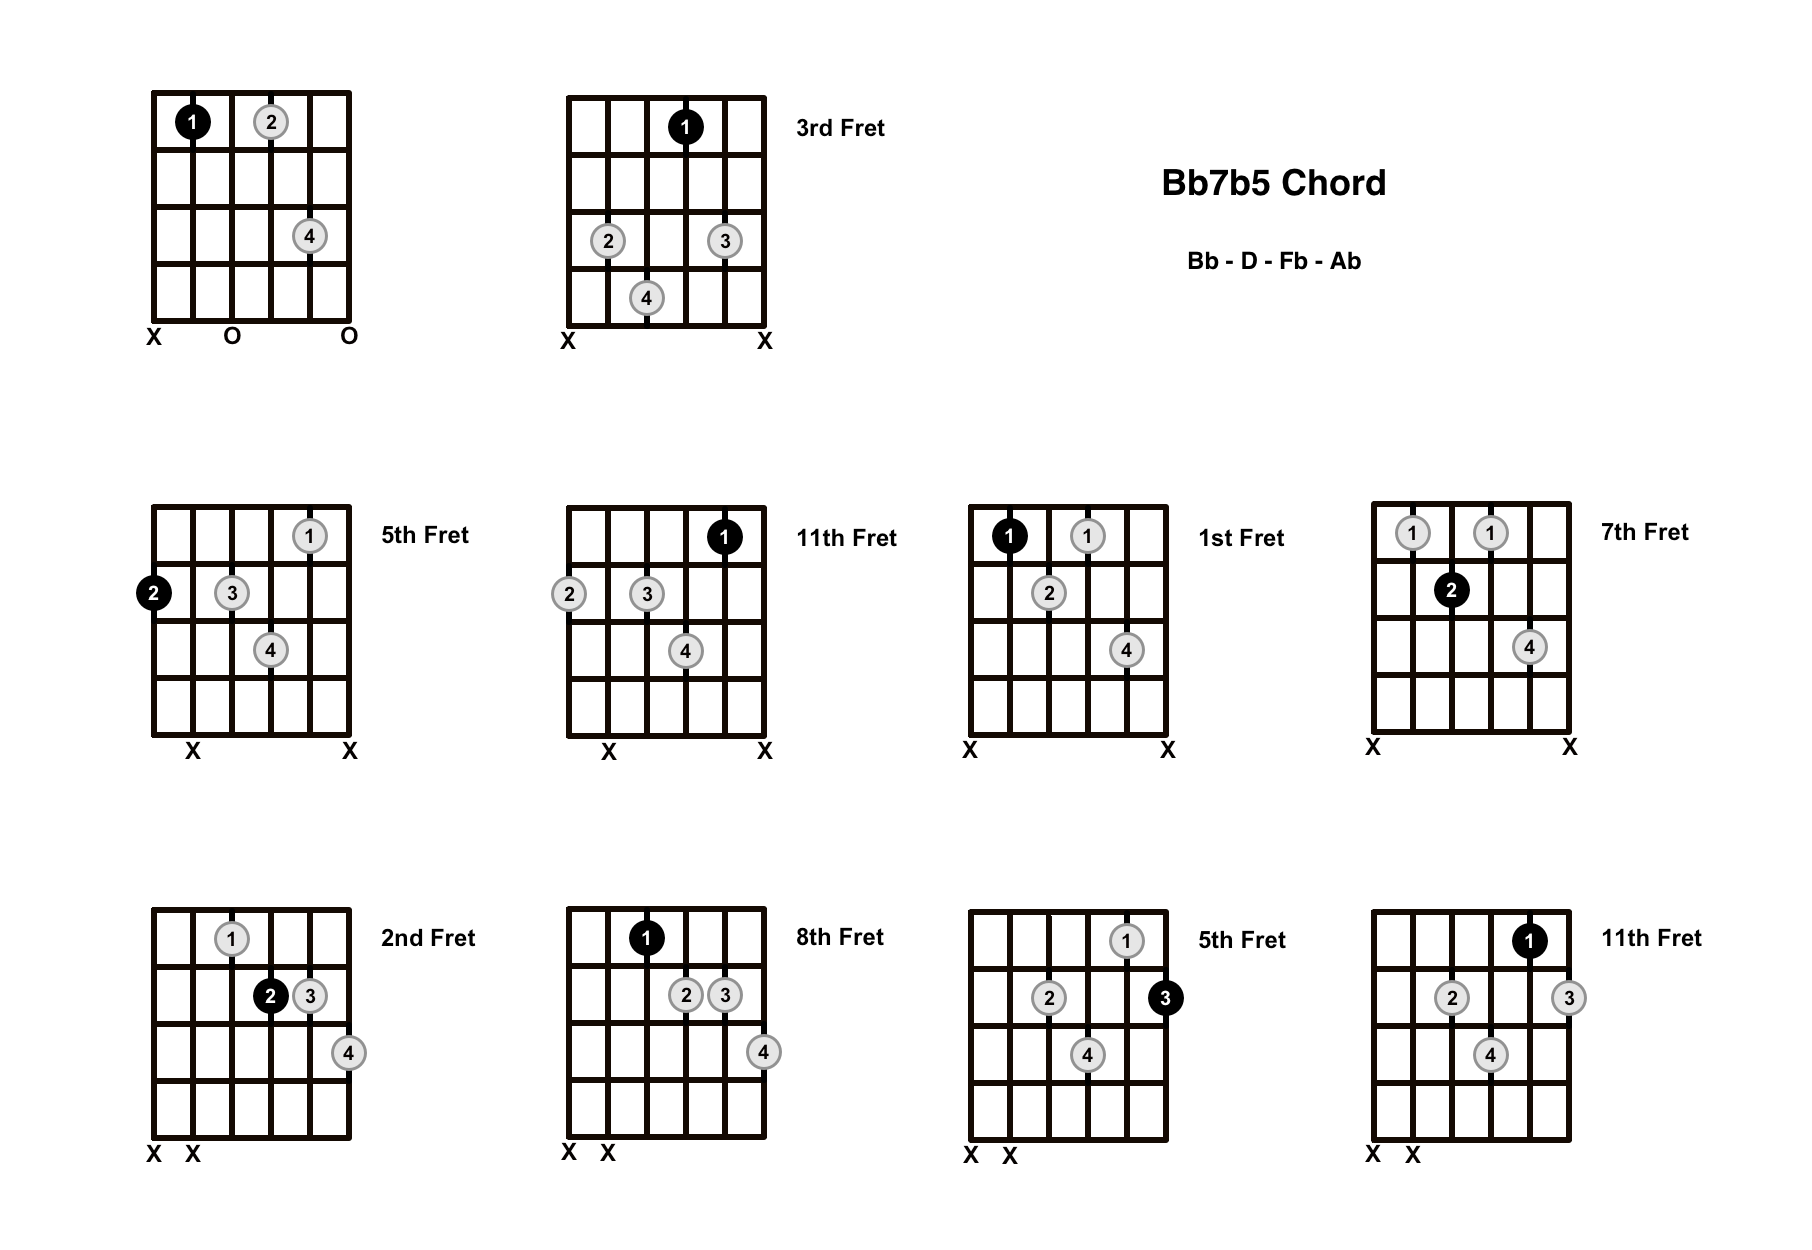 Bb7b5 Chord On The Guitar (B Flat Dominant 7 Flat 5) – Diagrams, Finger Positions and Theory